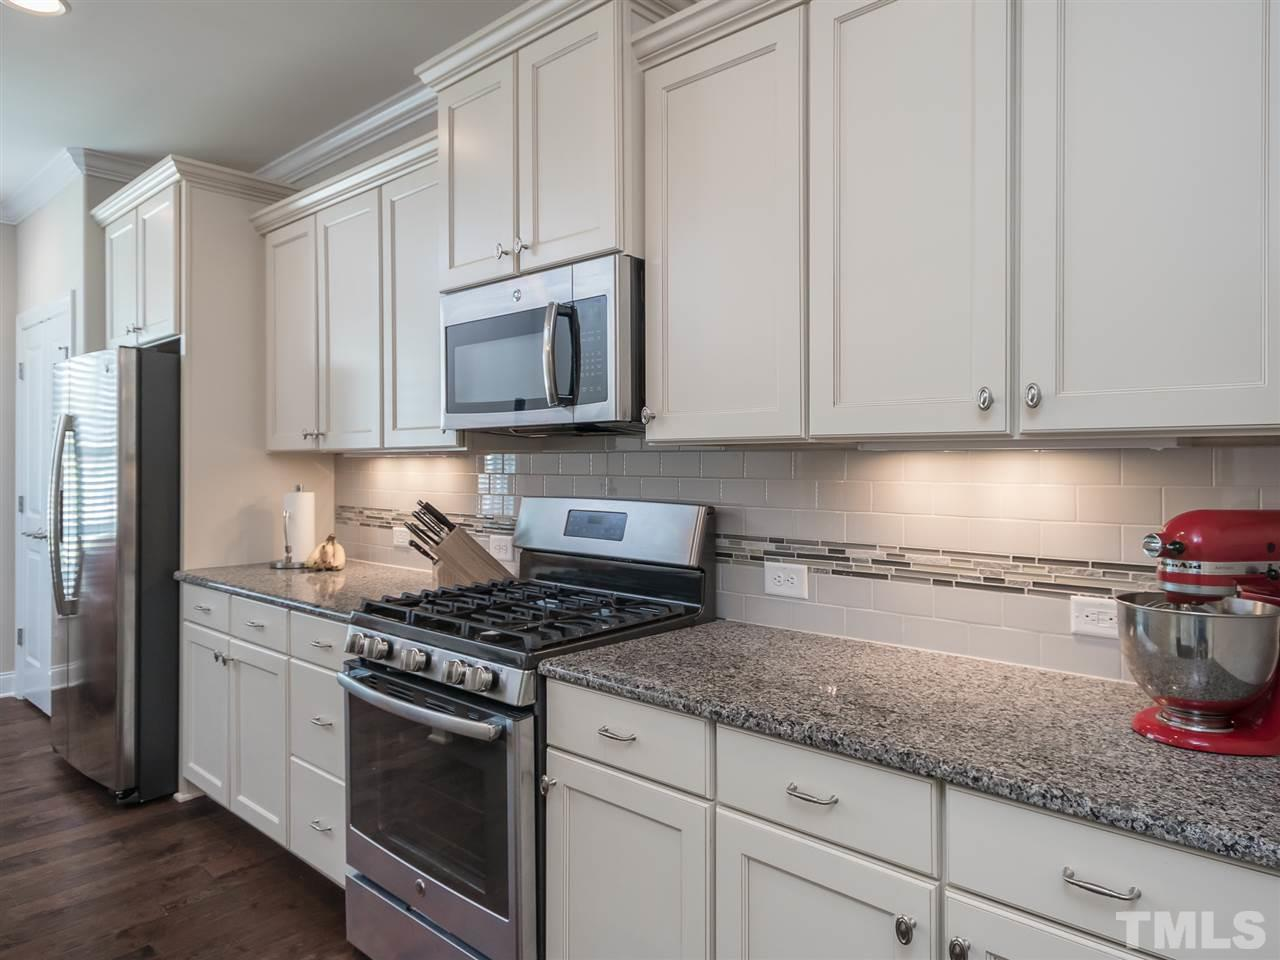 Stainless steel appliances, under counter lighting and pantry.